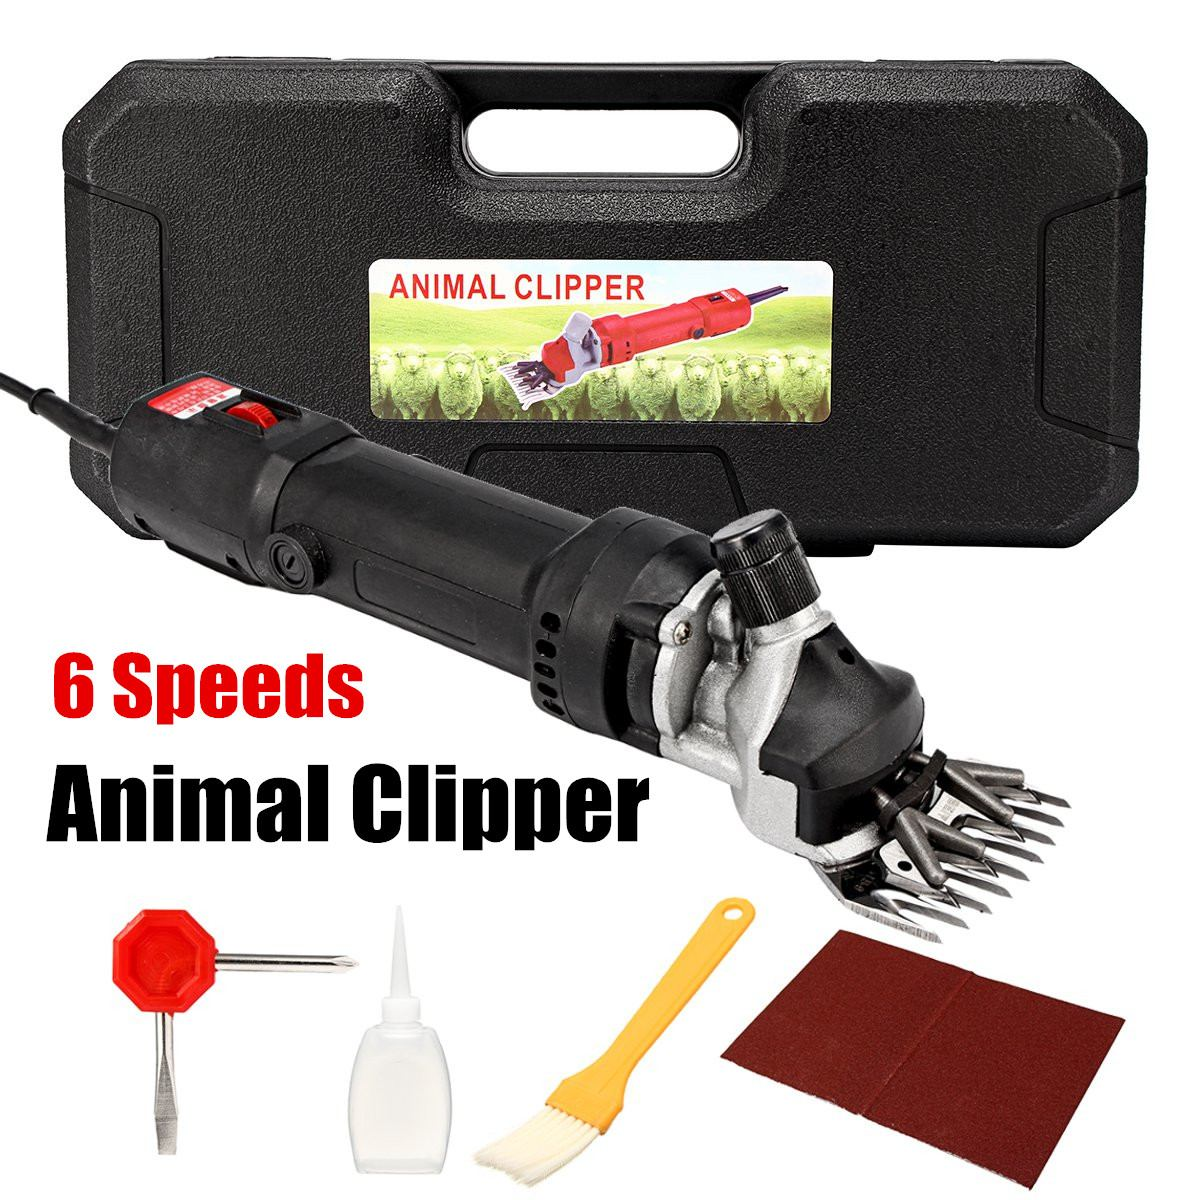 690W 6 Level Speed Electric Shears Shearing Hair Clipper Animal Sheep Goat Pet Farm Machine Scissor